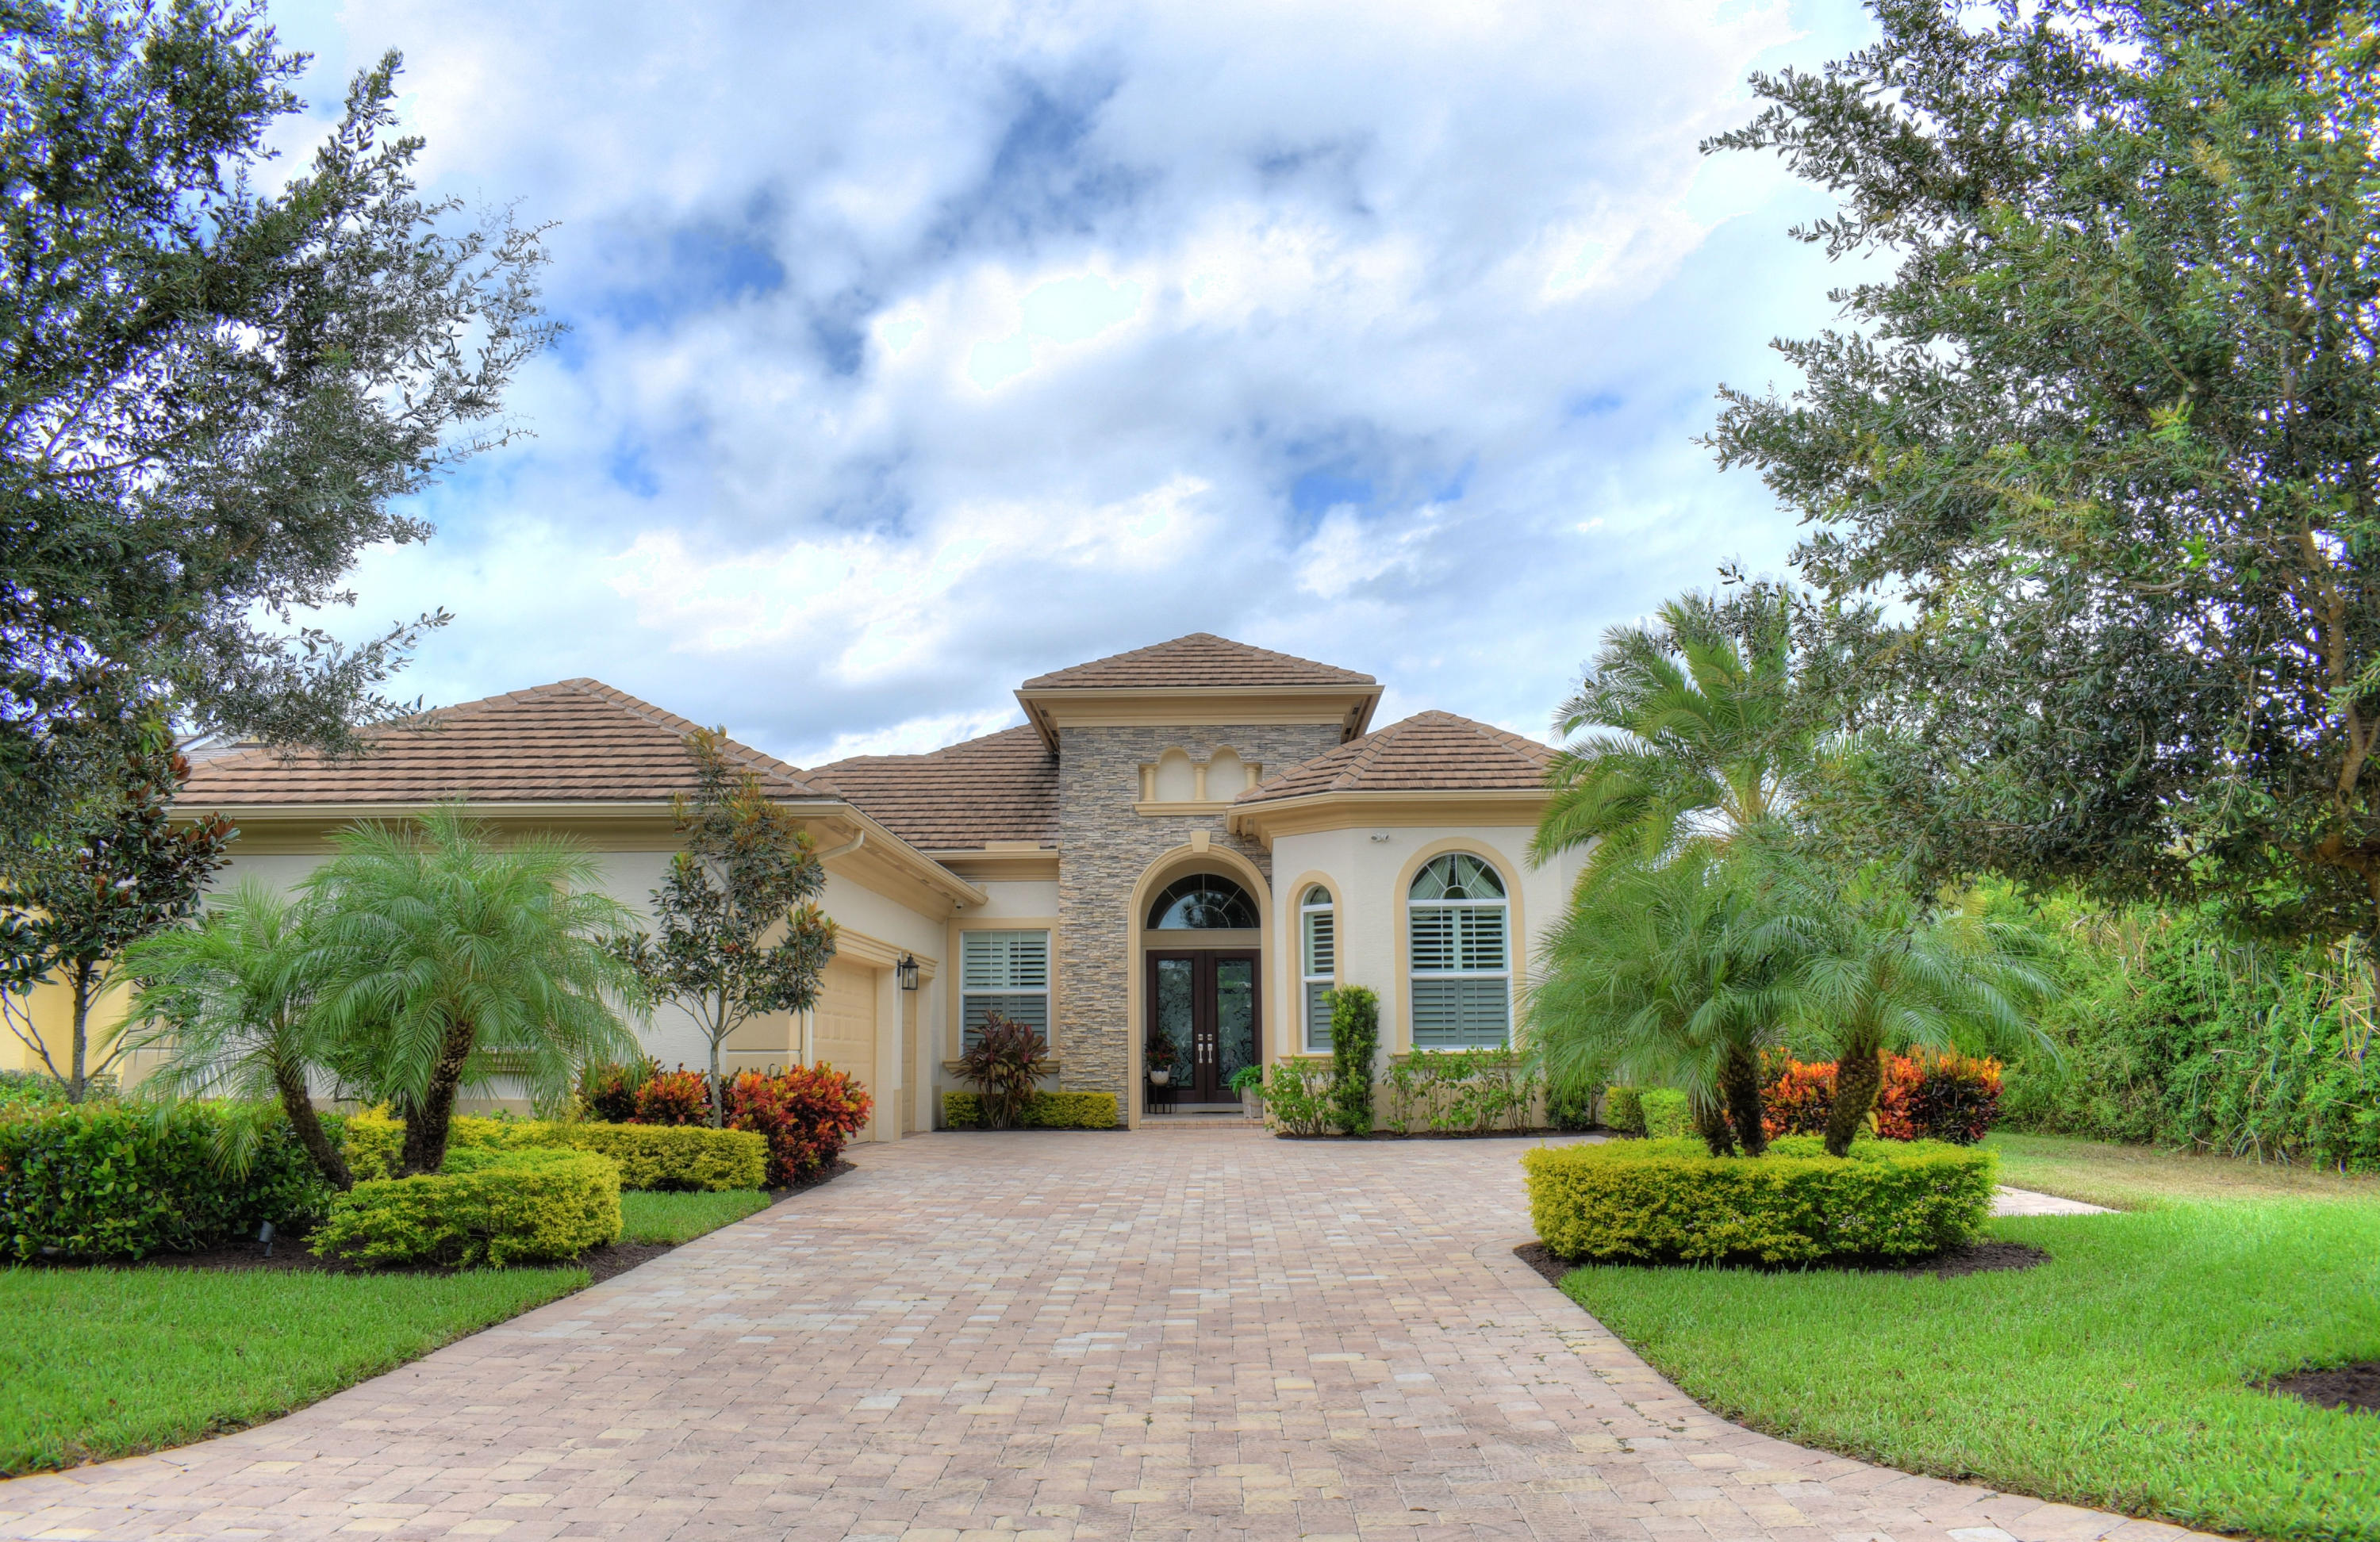 6251 Moss Ridge Pointe, Hobe Sound, Florida 33455, 5 Bedrooms Bedrooms, ,4.1 BathroomsBathrooms,A,Single family,Moss Ridge Pointe,RX-10467968